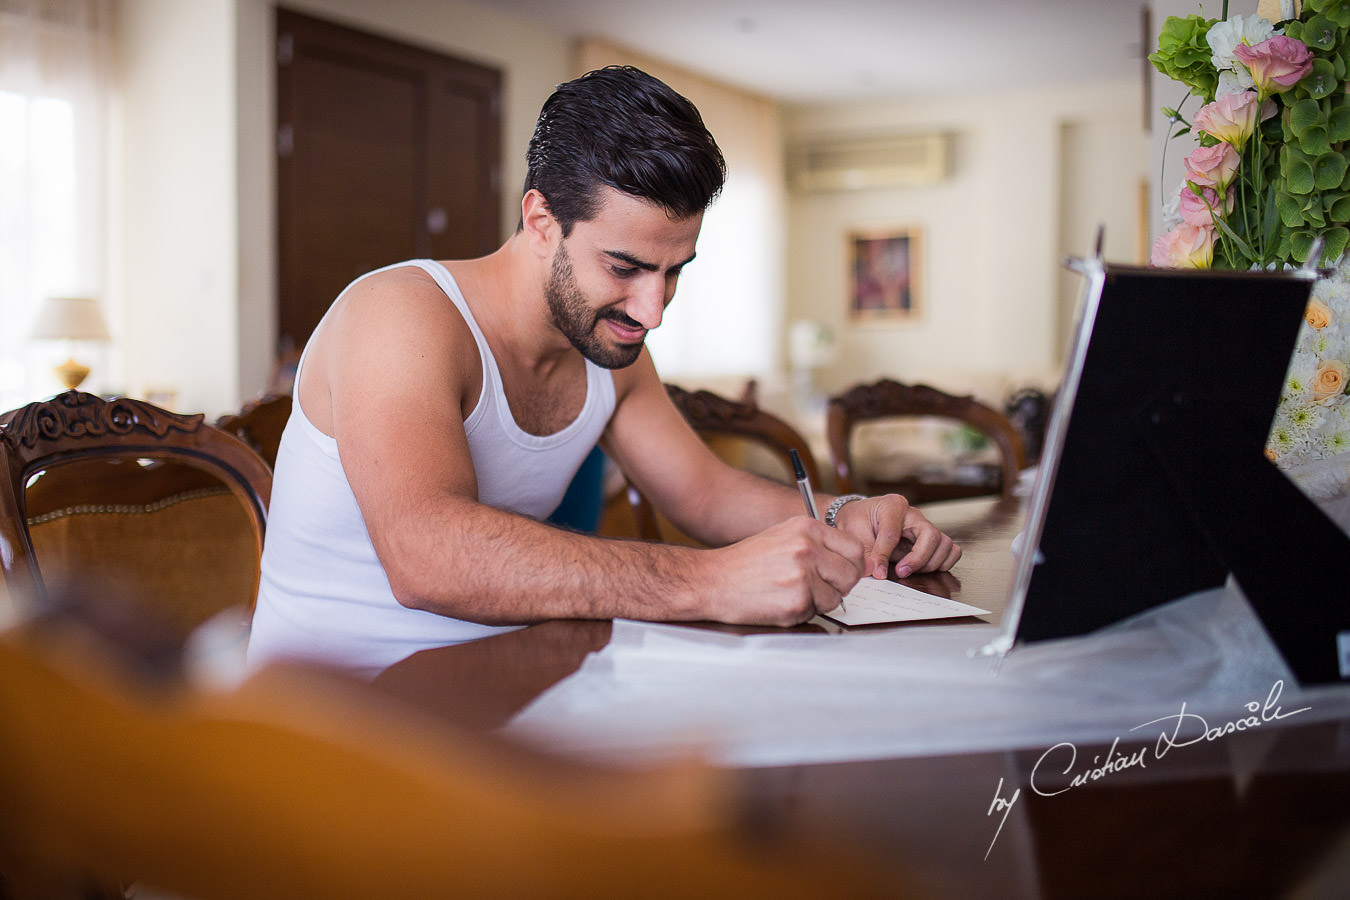 The Groom, Alexis, writing a letter to his bride, captured at a wedding in Cyprus by Photographer Cristian Dascalu.